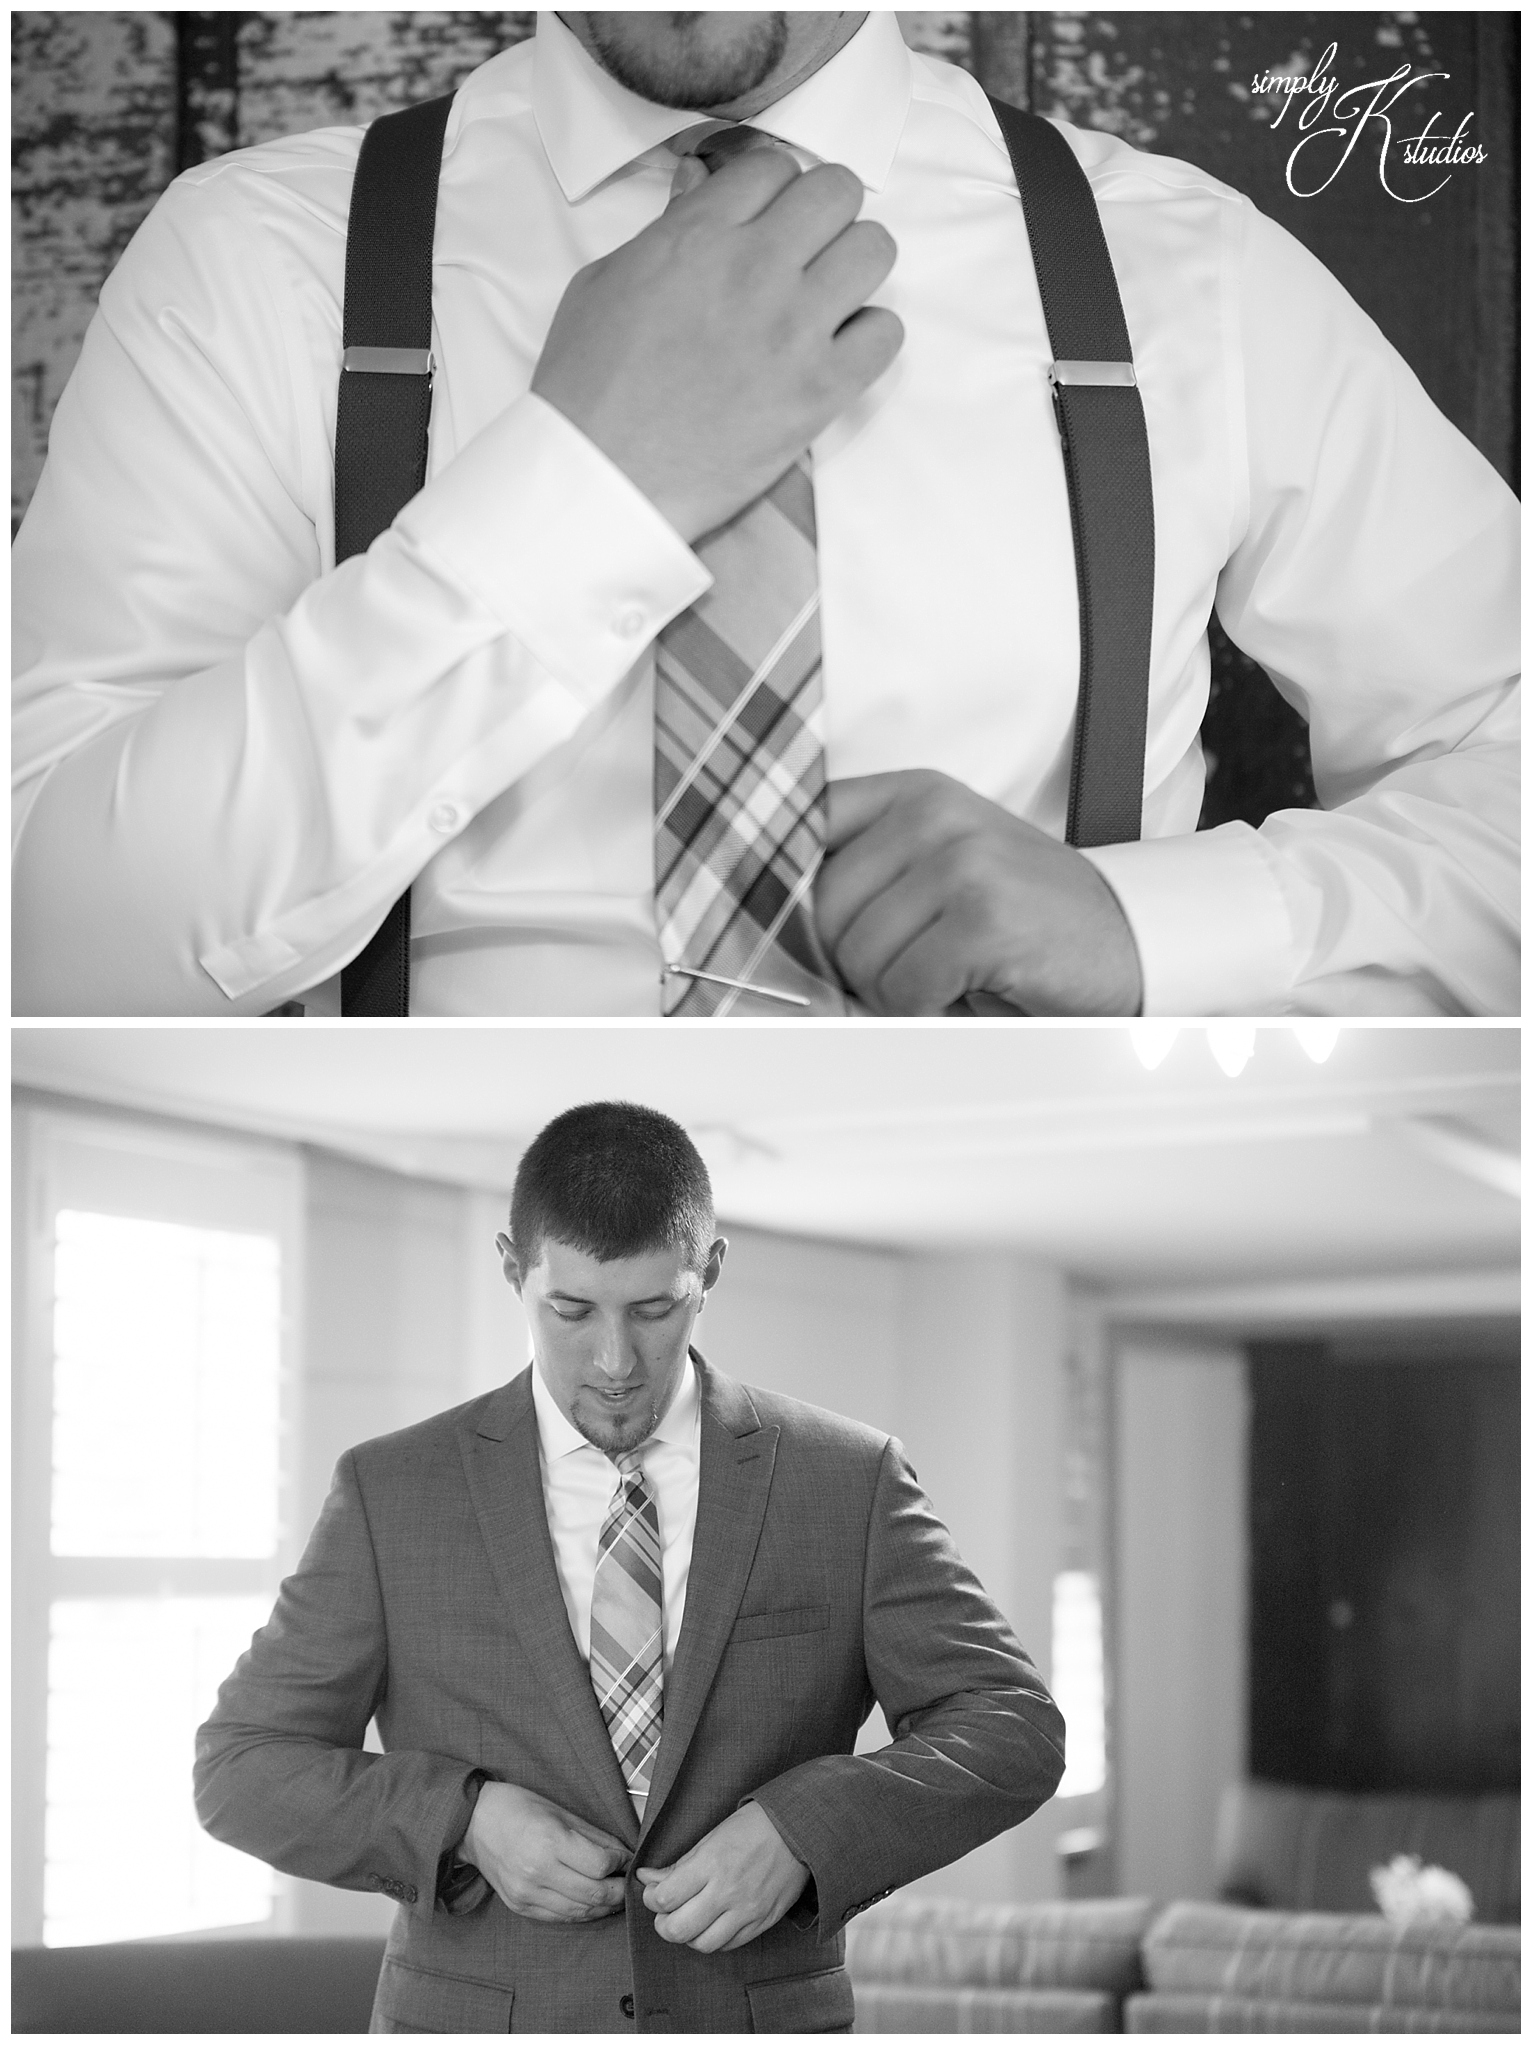 Groom getting ready photos.jpg